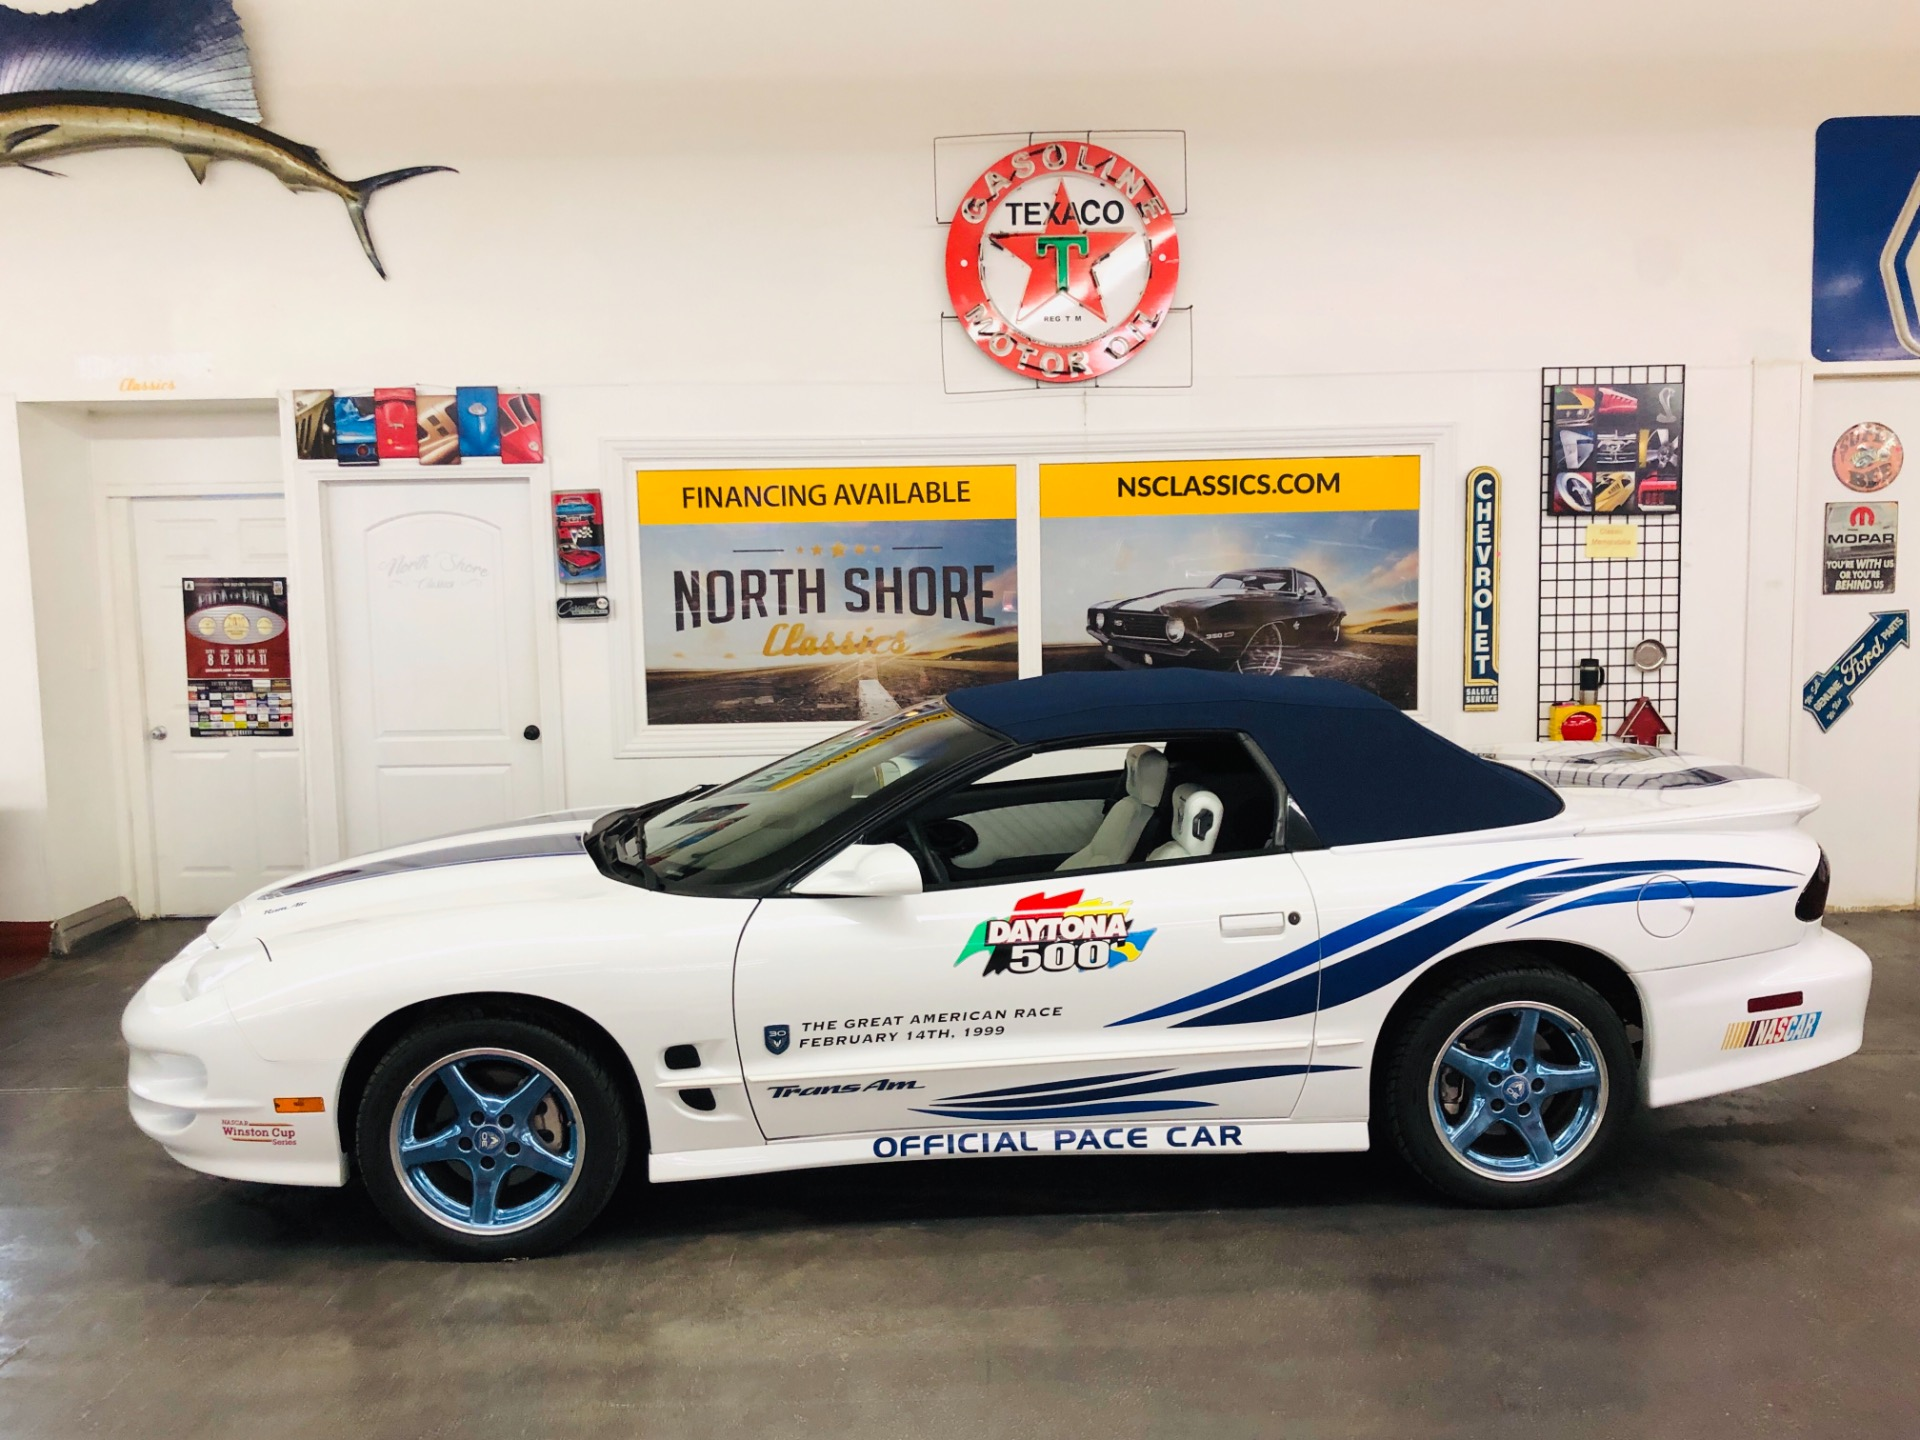 Used 1999 Pontiac Trans Am -OFFICIAL PACE CAR -3 months / 3,000 miles WARRANTY-BUY WITH CONFIDENCE- | Mundelein, IL